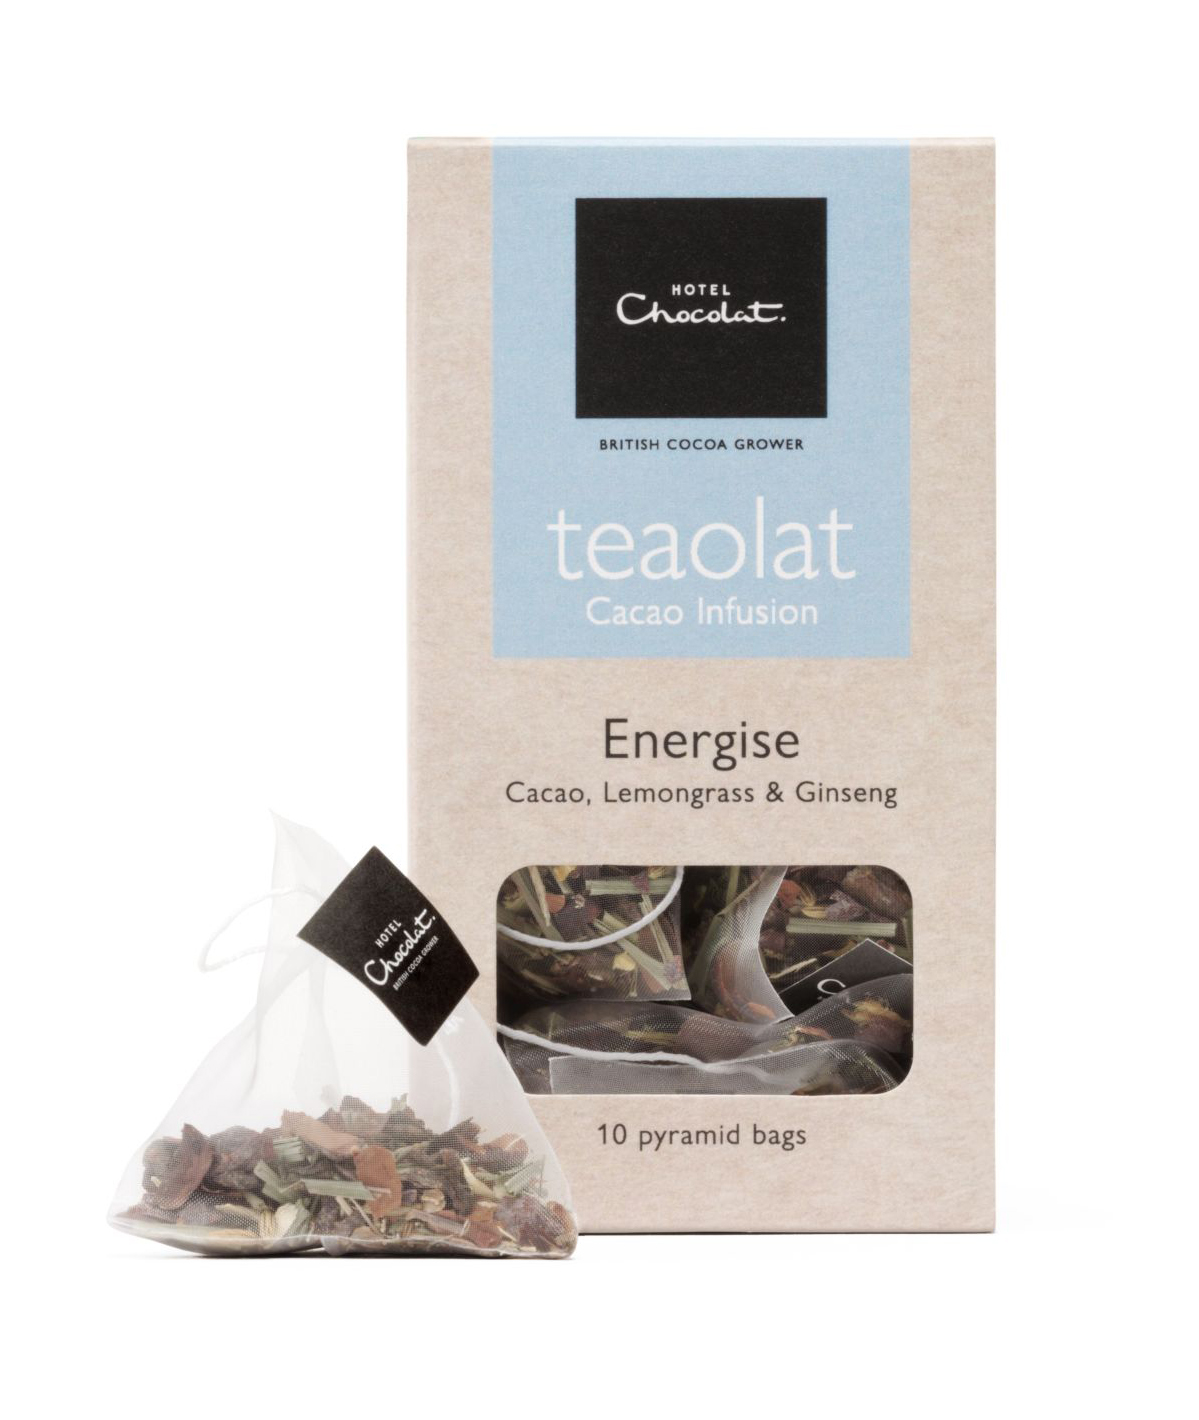 Hotel Chocolat Teaolat Energise - Cacao Lemongrass & Ginseng, £5 for box of 10 bags (Hotel Chocolat/PA)